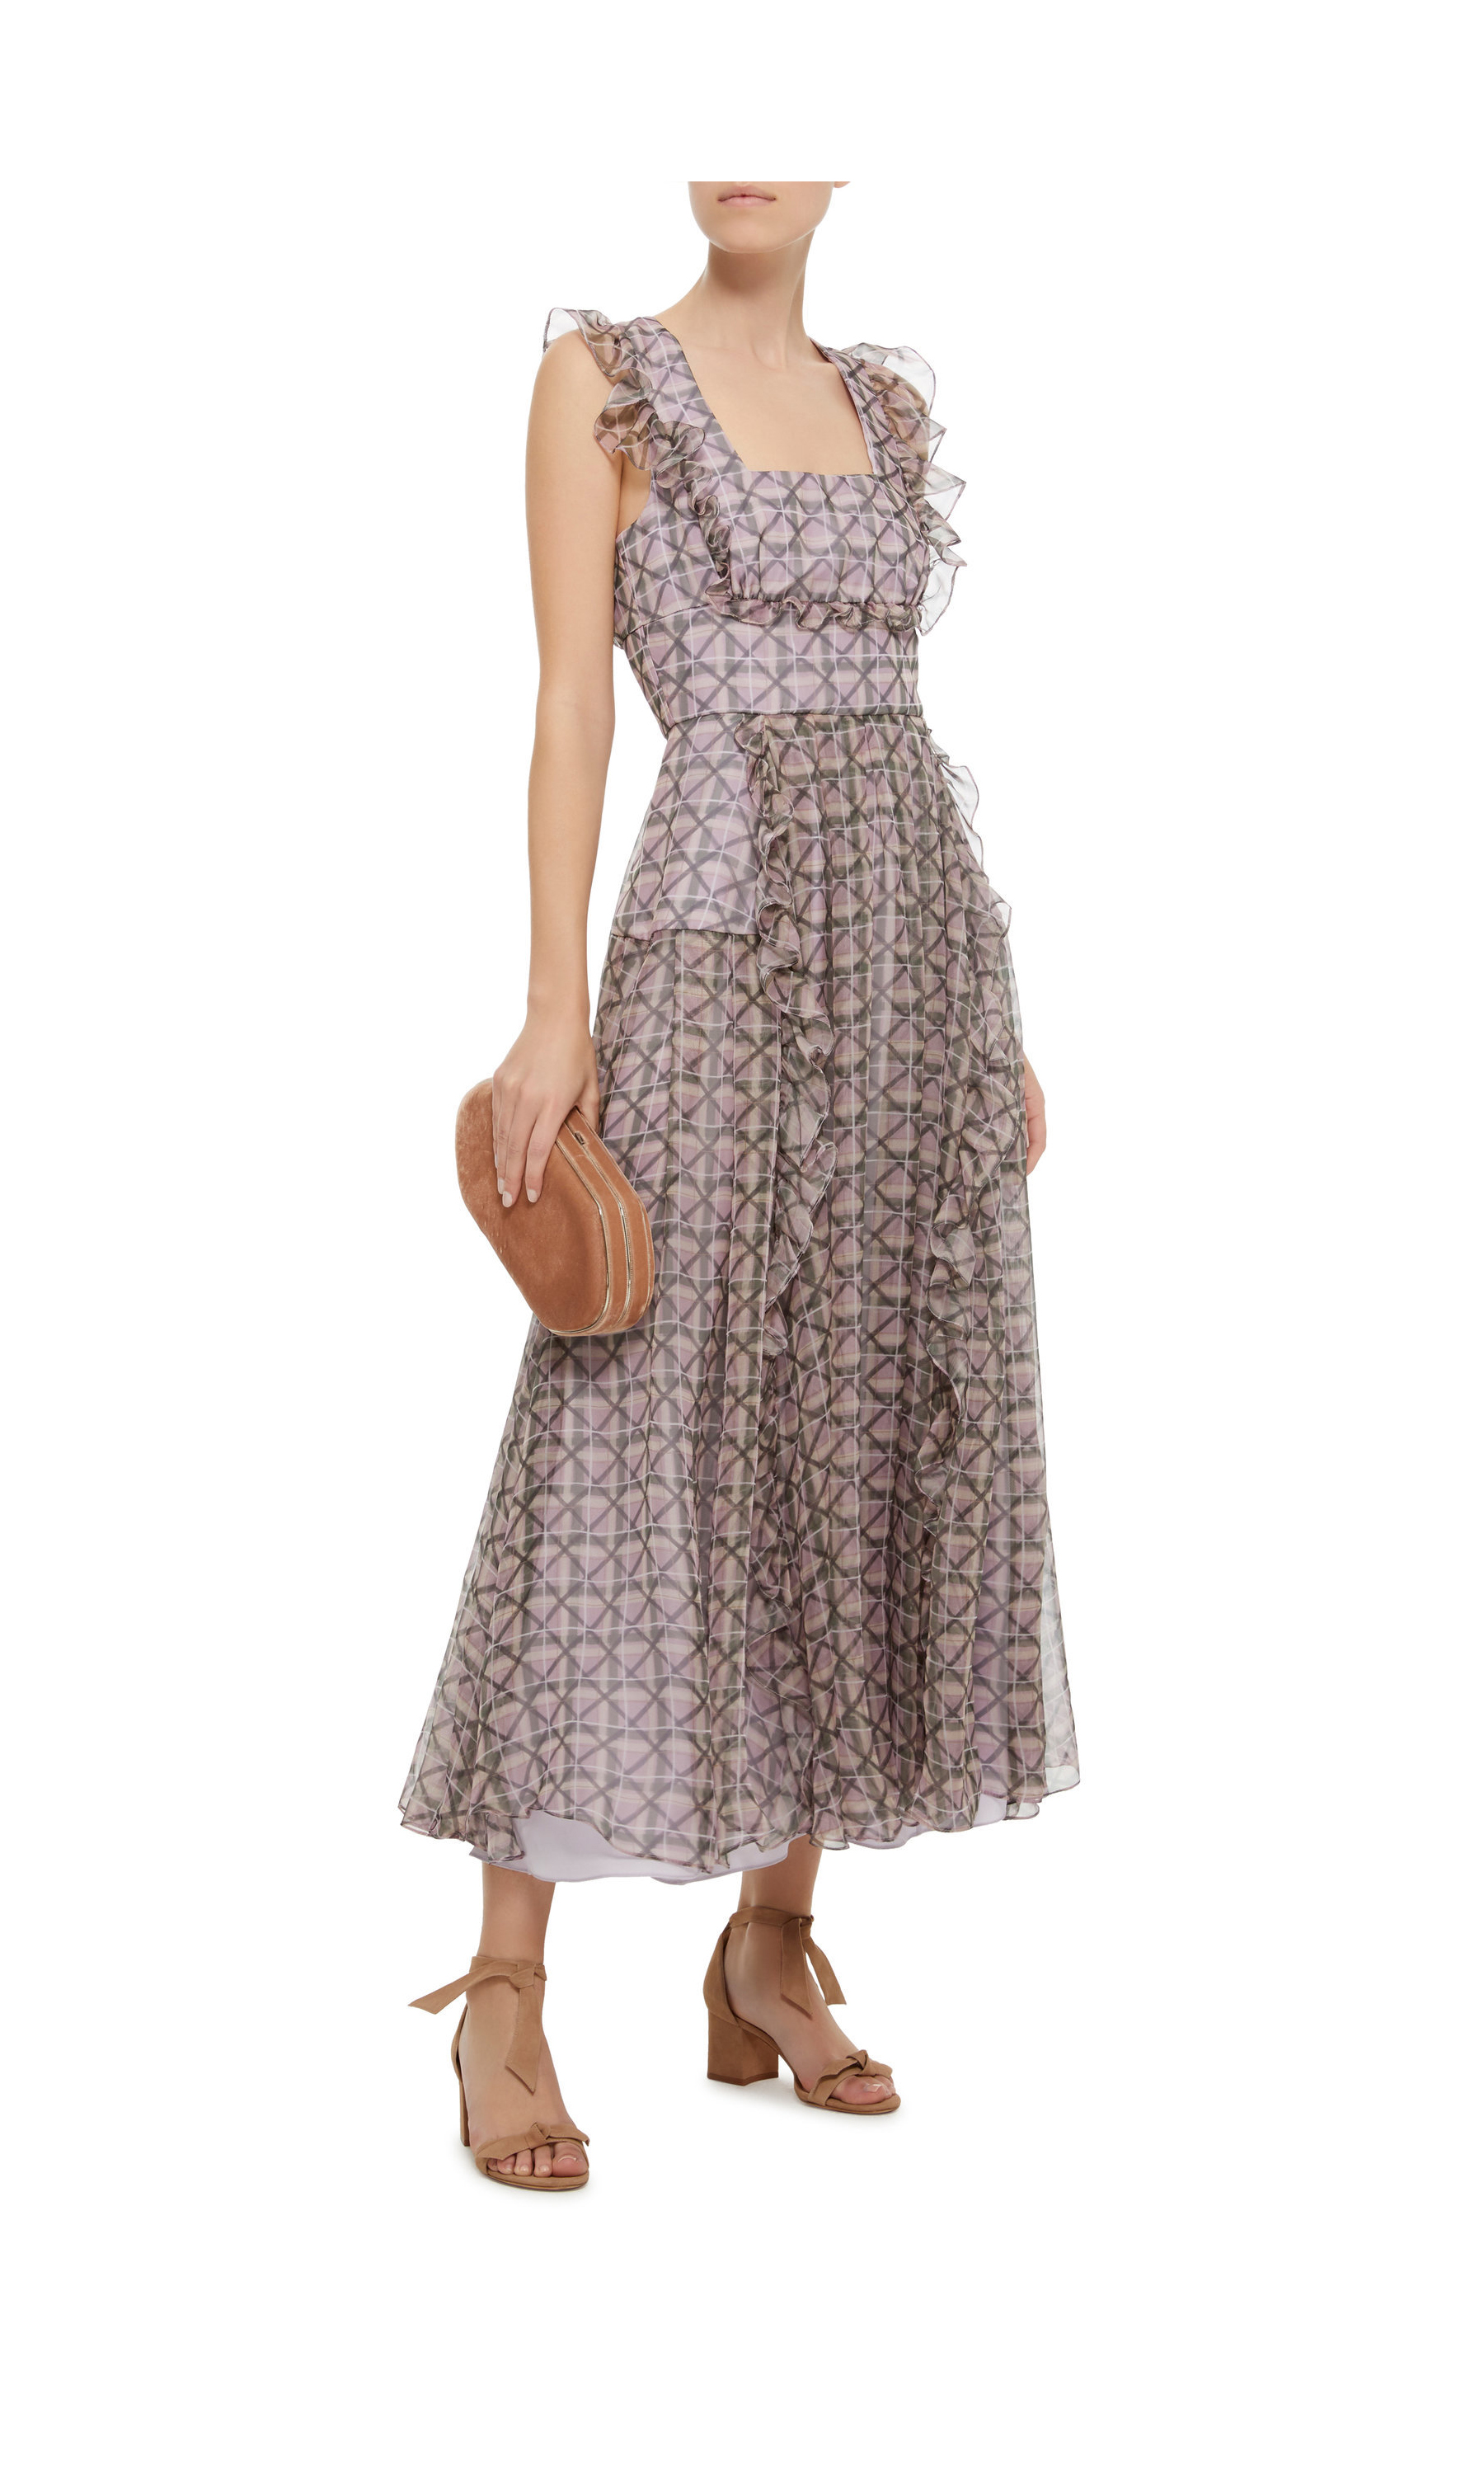 Alexa Chung Engagement Party Dress, Patterned Midi